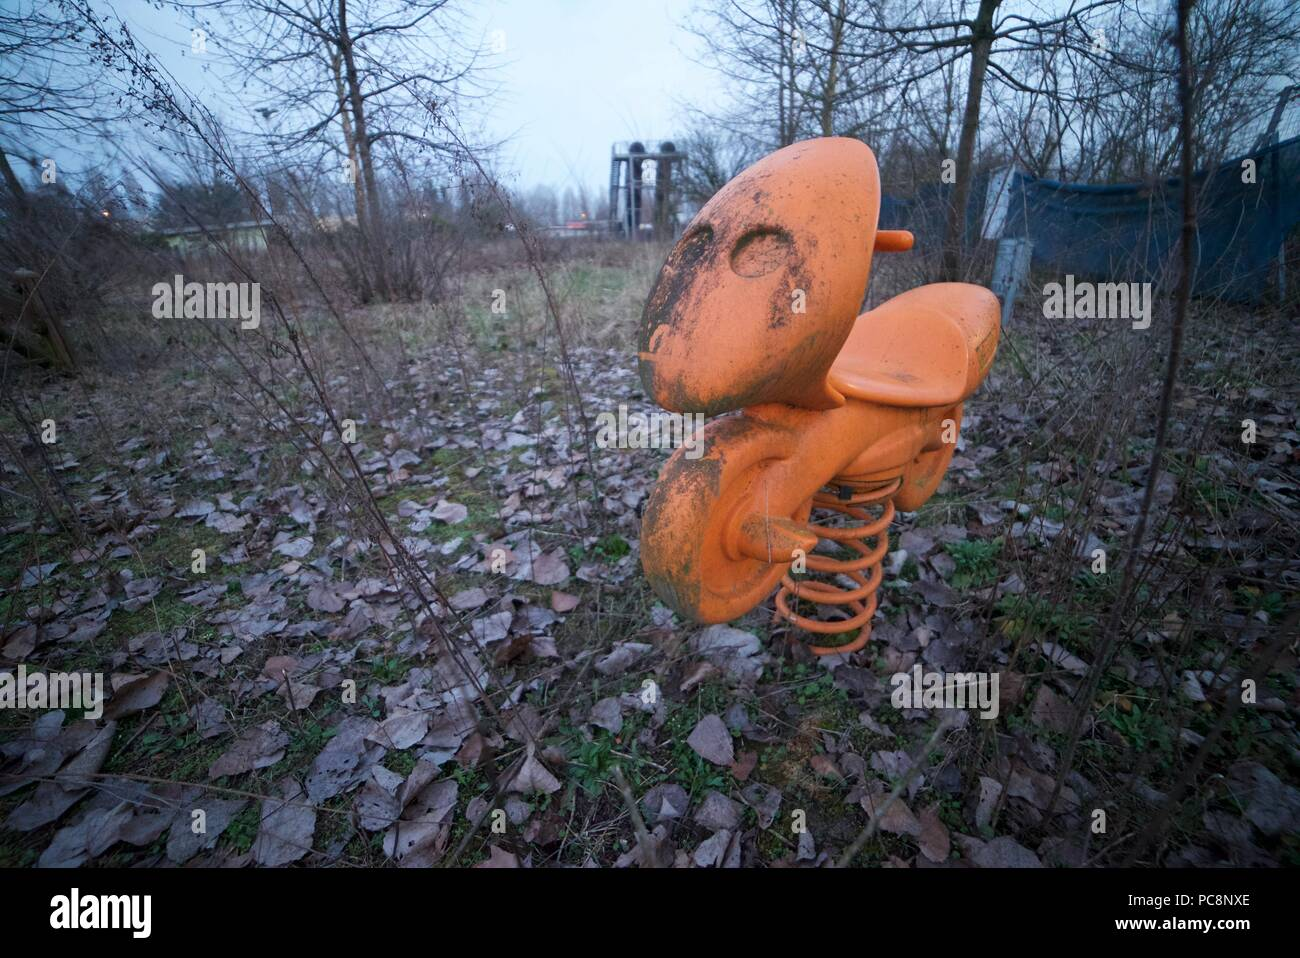 Abandoned Play Park For Children With An Old Springer Toy Eerie And Creepy Abandoned Playground Horror Setting Stock Photo Alamy